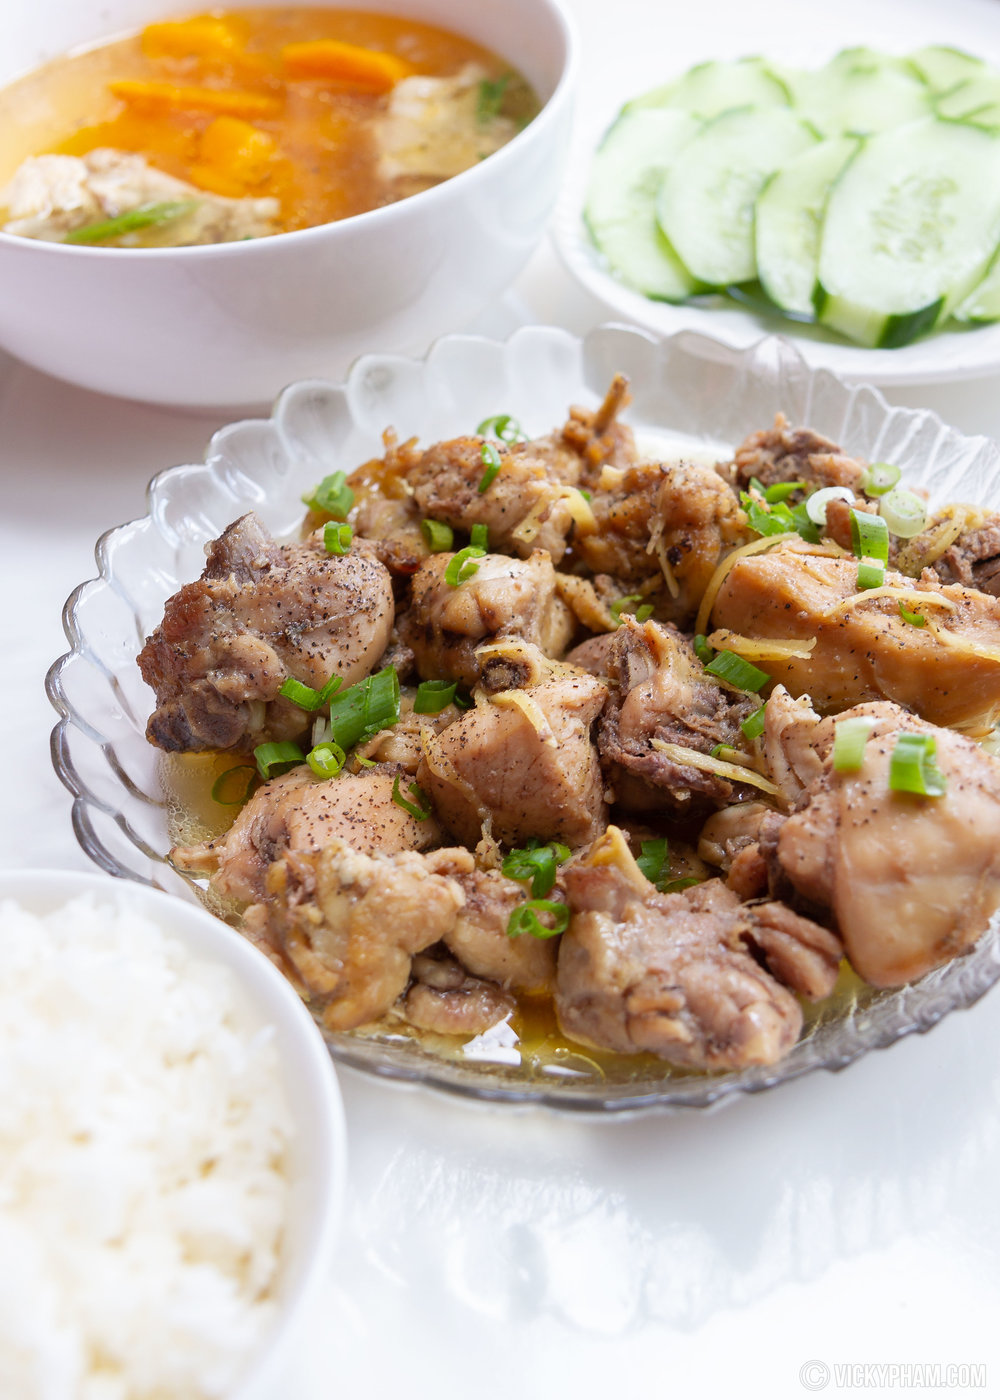 Vietnamese Caramelized Chicken with Ginger (Ga Kho Gung)